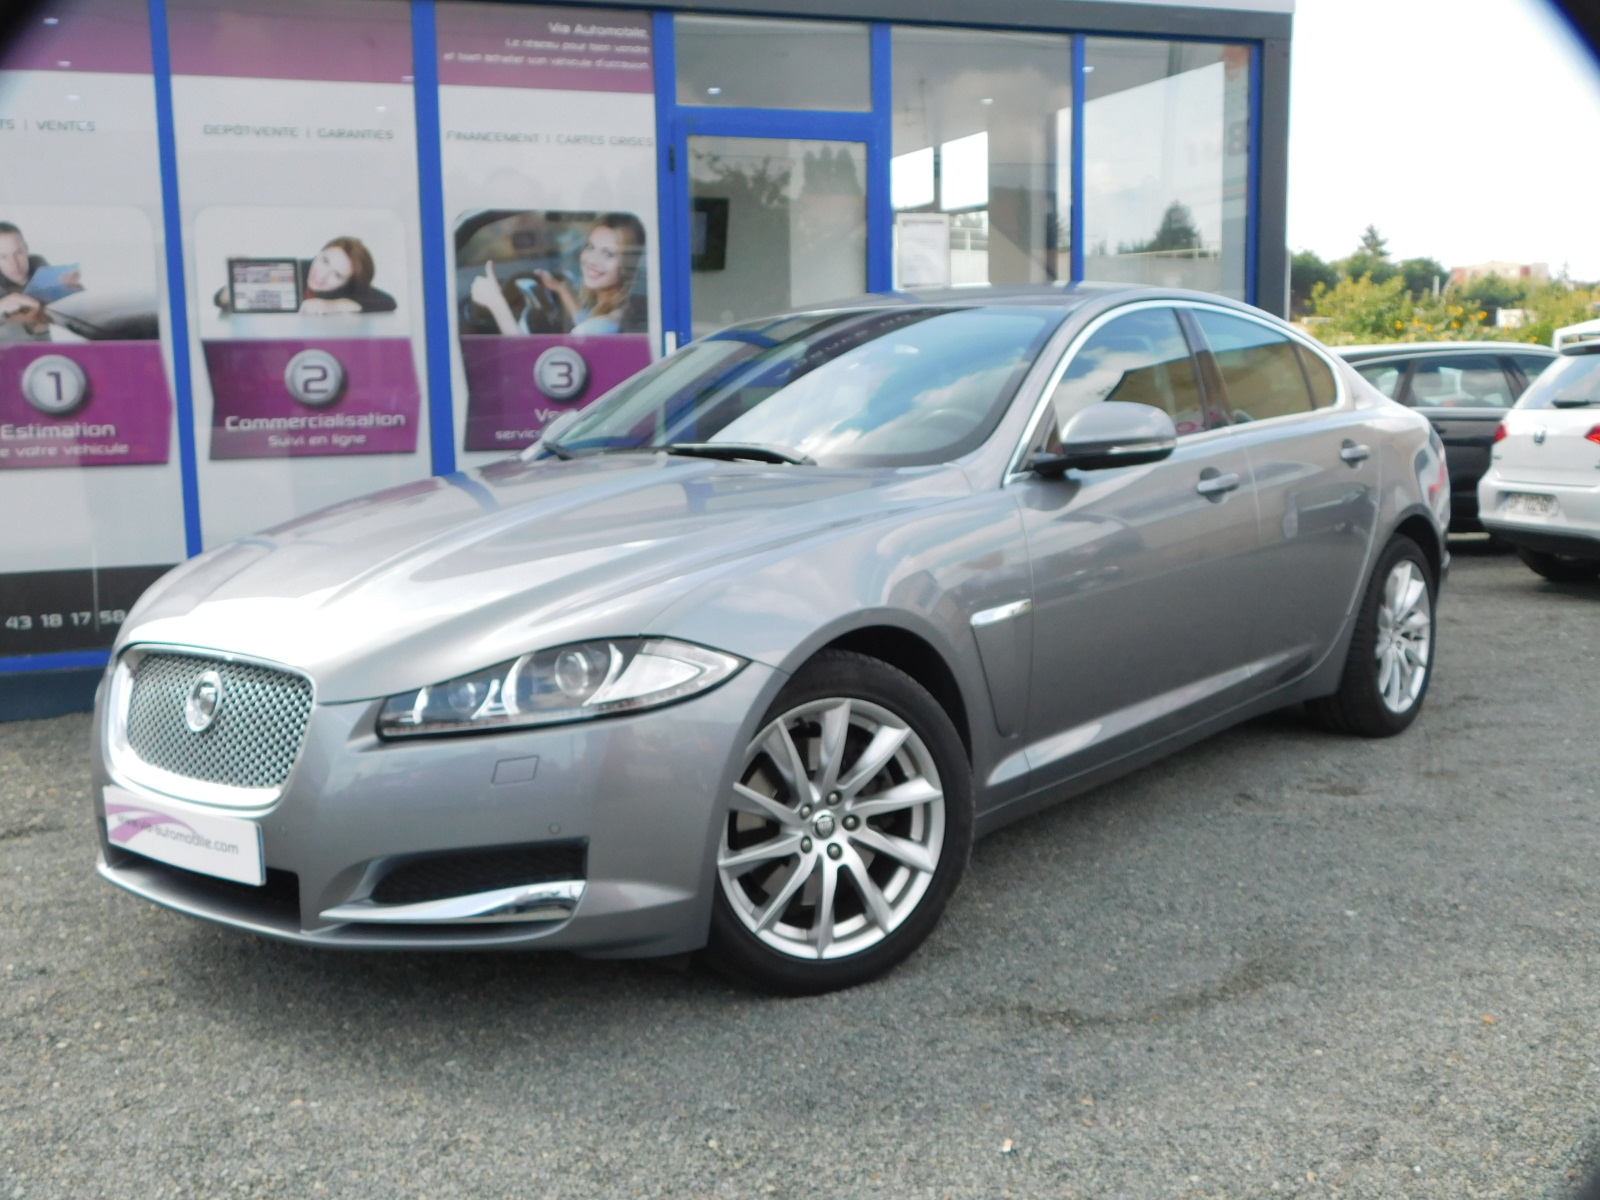 voiture jaguar xf 2 2 d 200 luxe premium a occasion diesel 2013 53200 km 25483 le. Black Bedroom Furniture Sets. Home Design Ideas